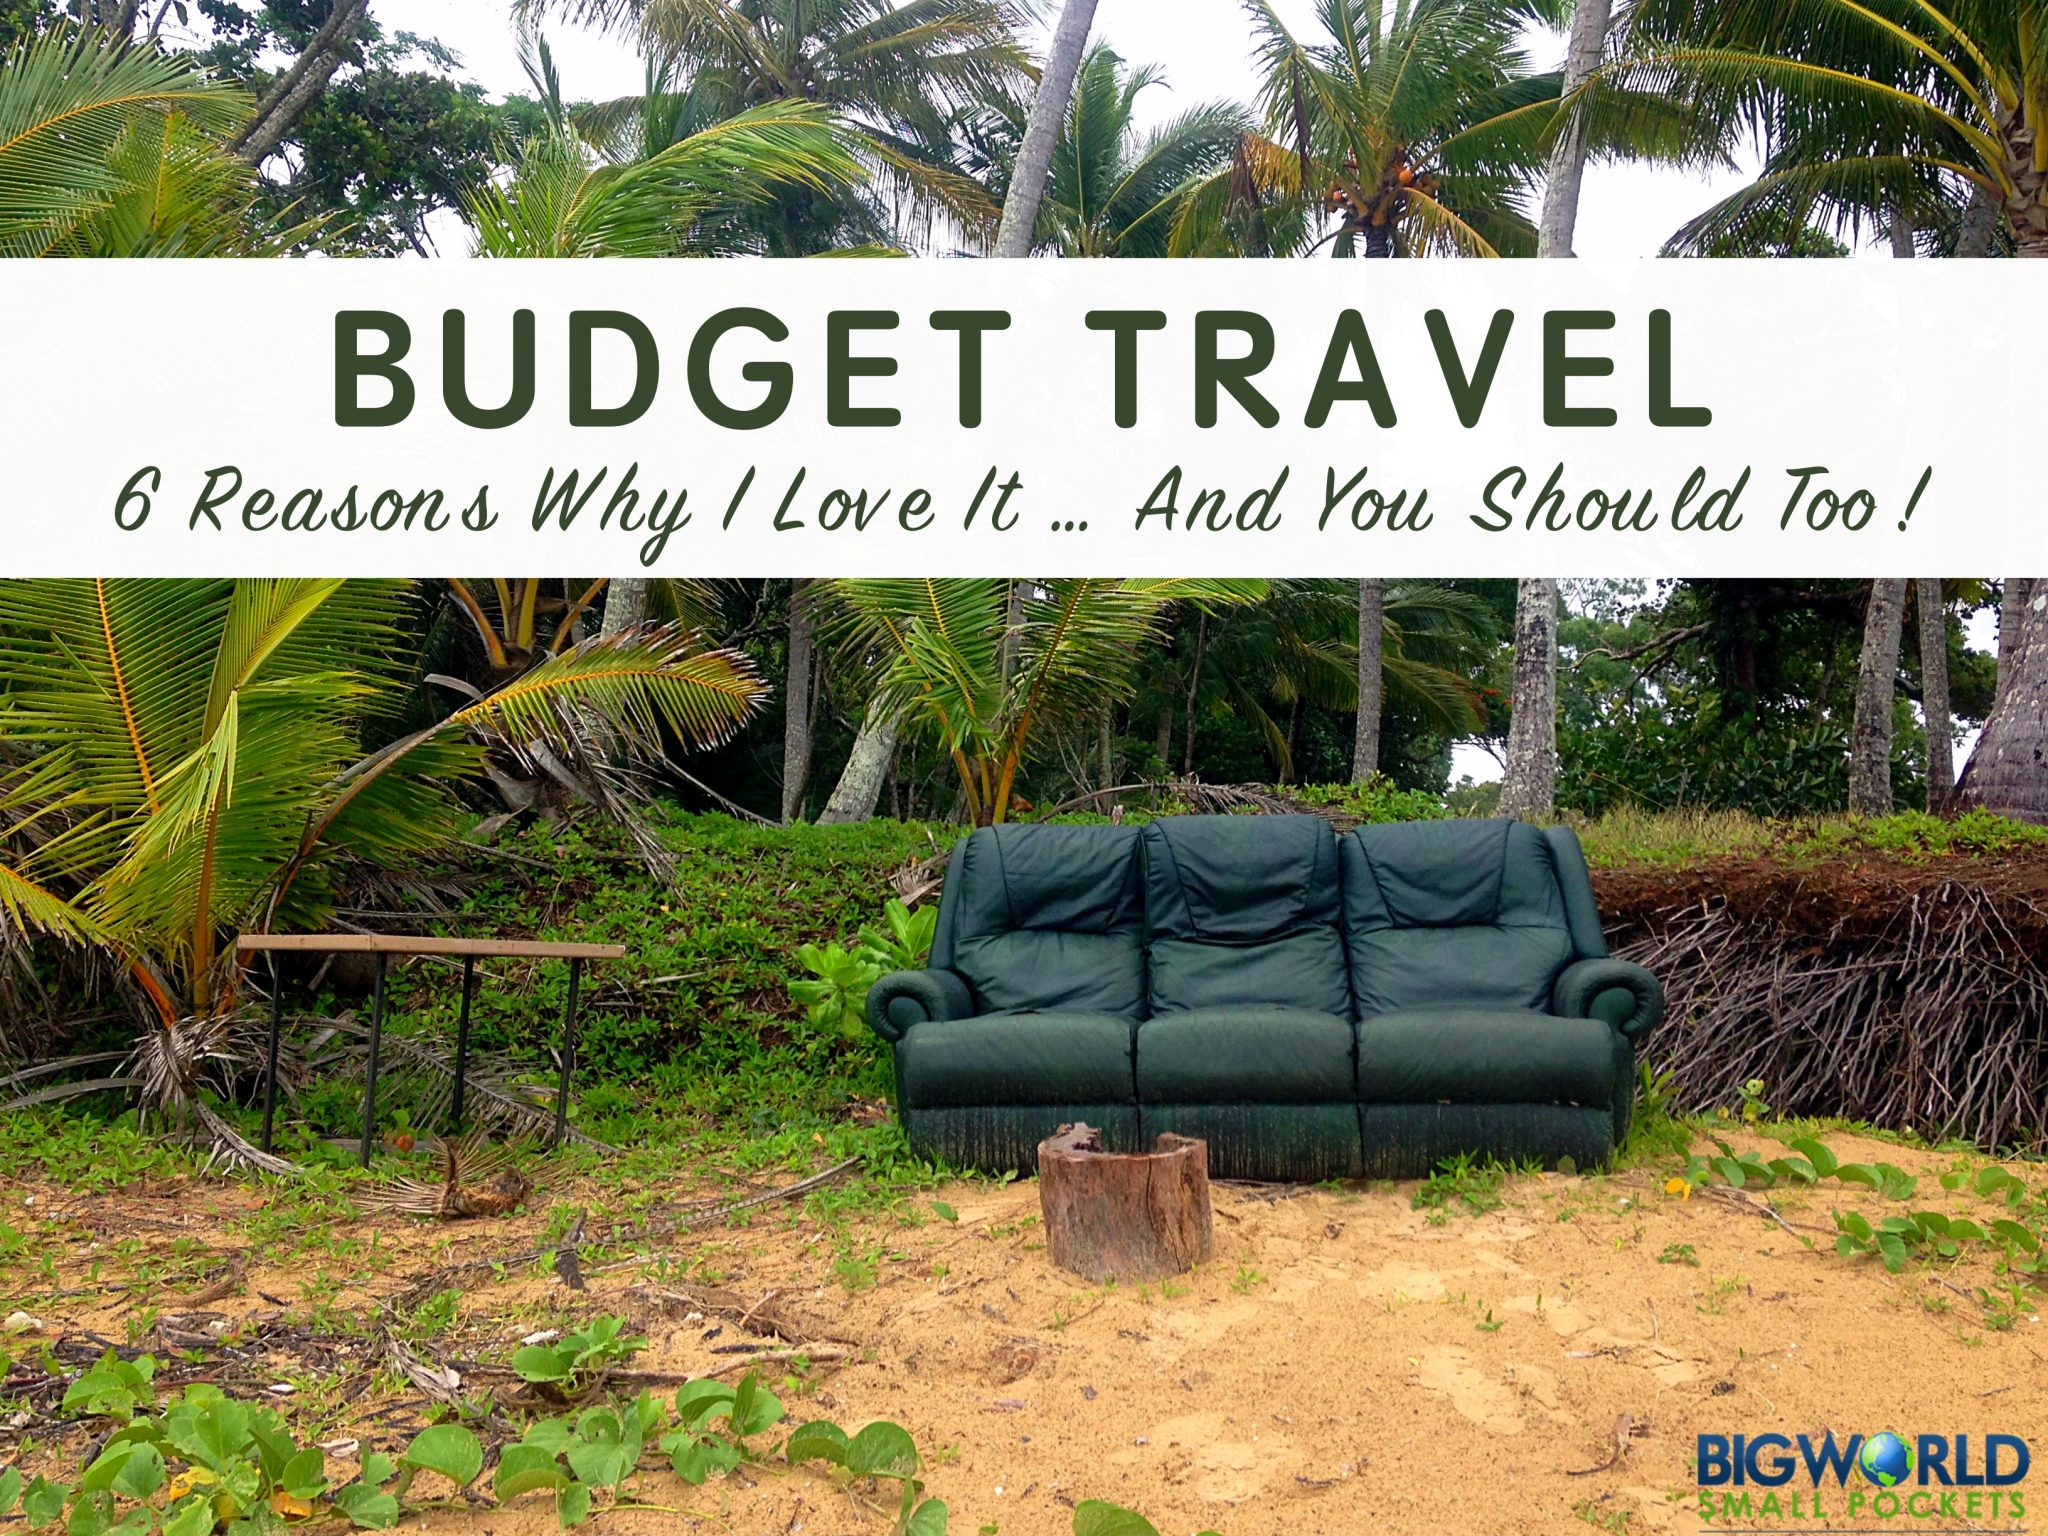 Why I love Budget Travel